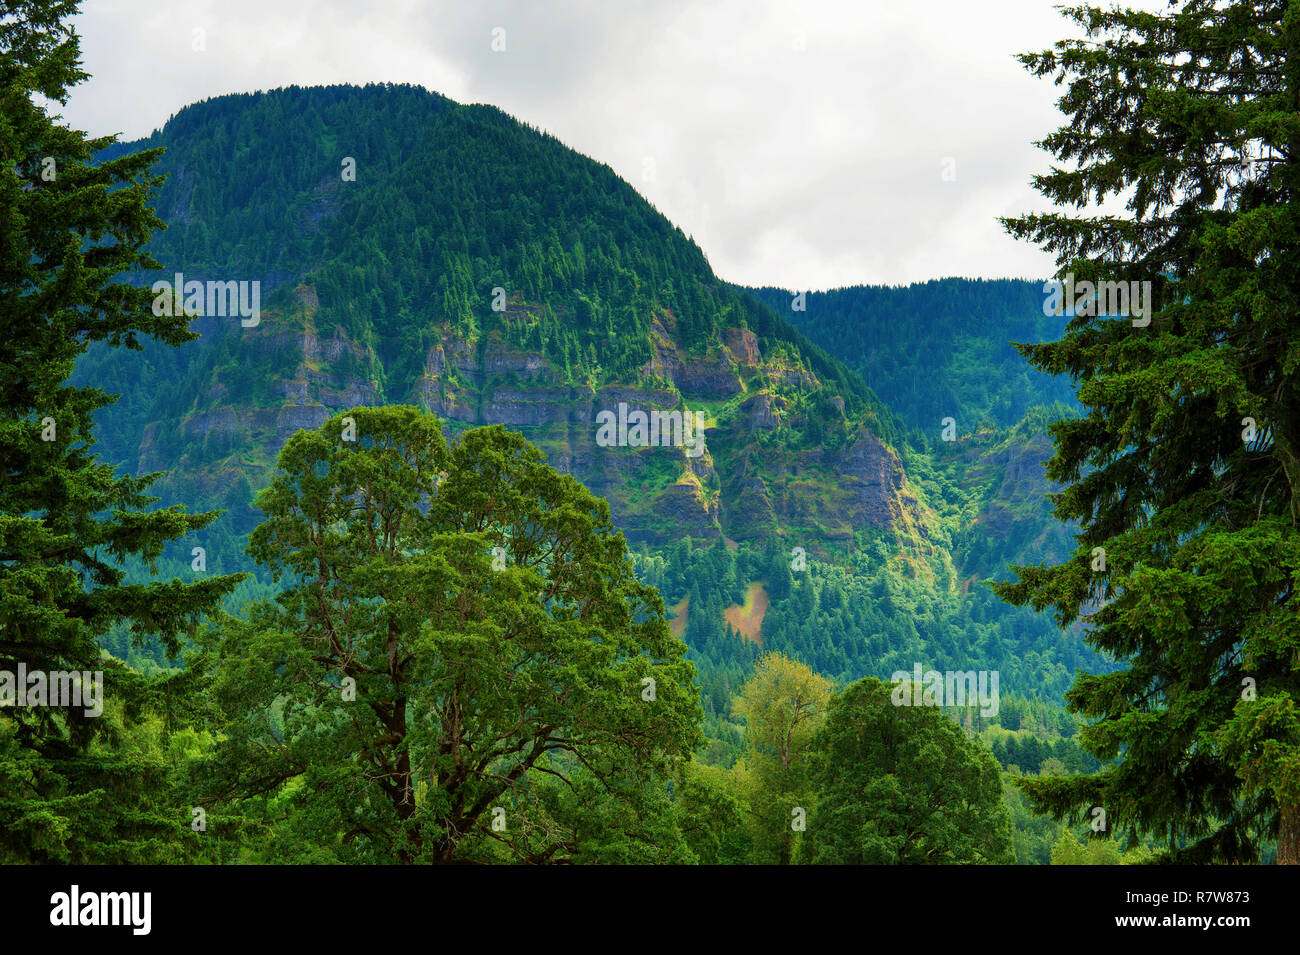 Majestic scene of the Oregon side of the Columbia River Gorge seen from Beacon Hill State Park - Stock Image